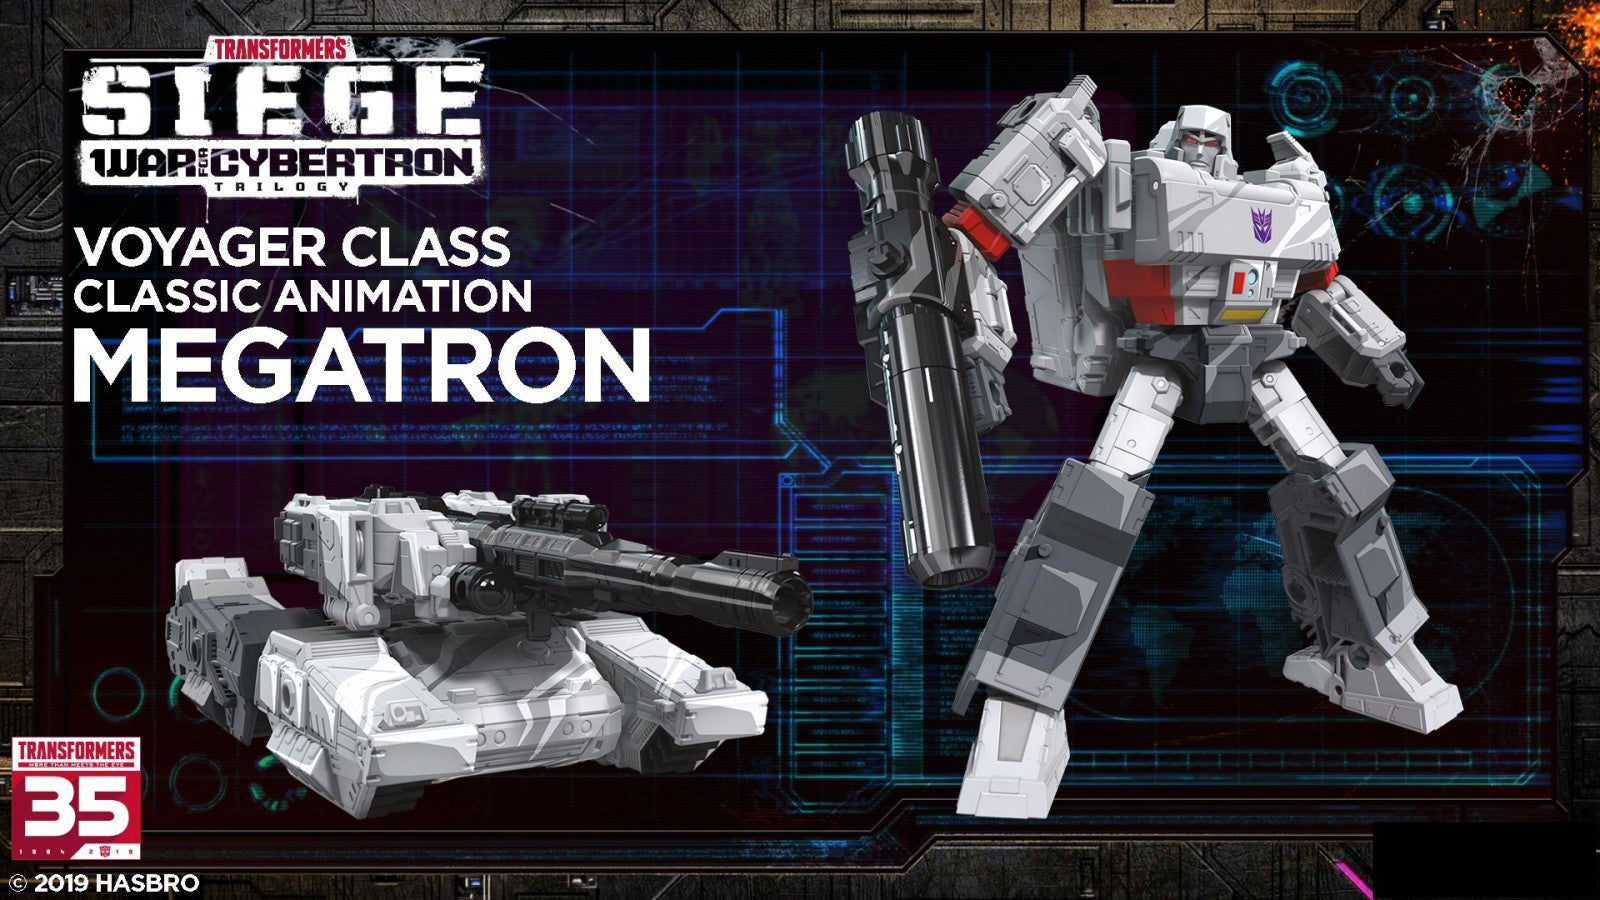 Hasbro - Transfomers Generations - War For Cybertron: Siege - Voyager -  Megatron (Classic Animation)